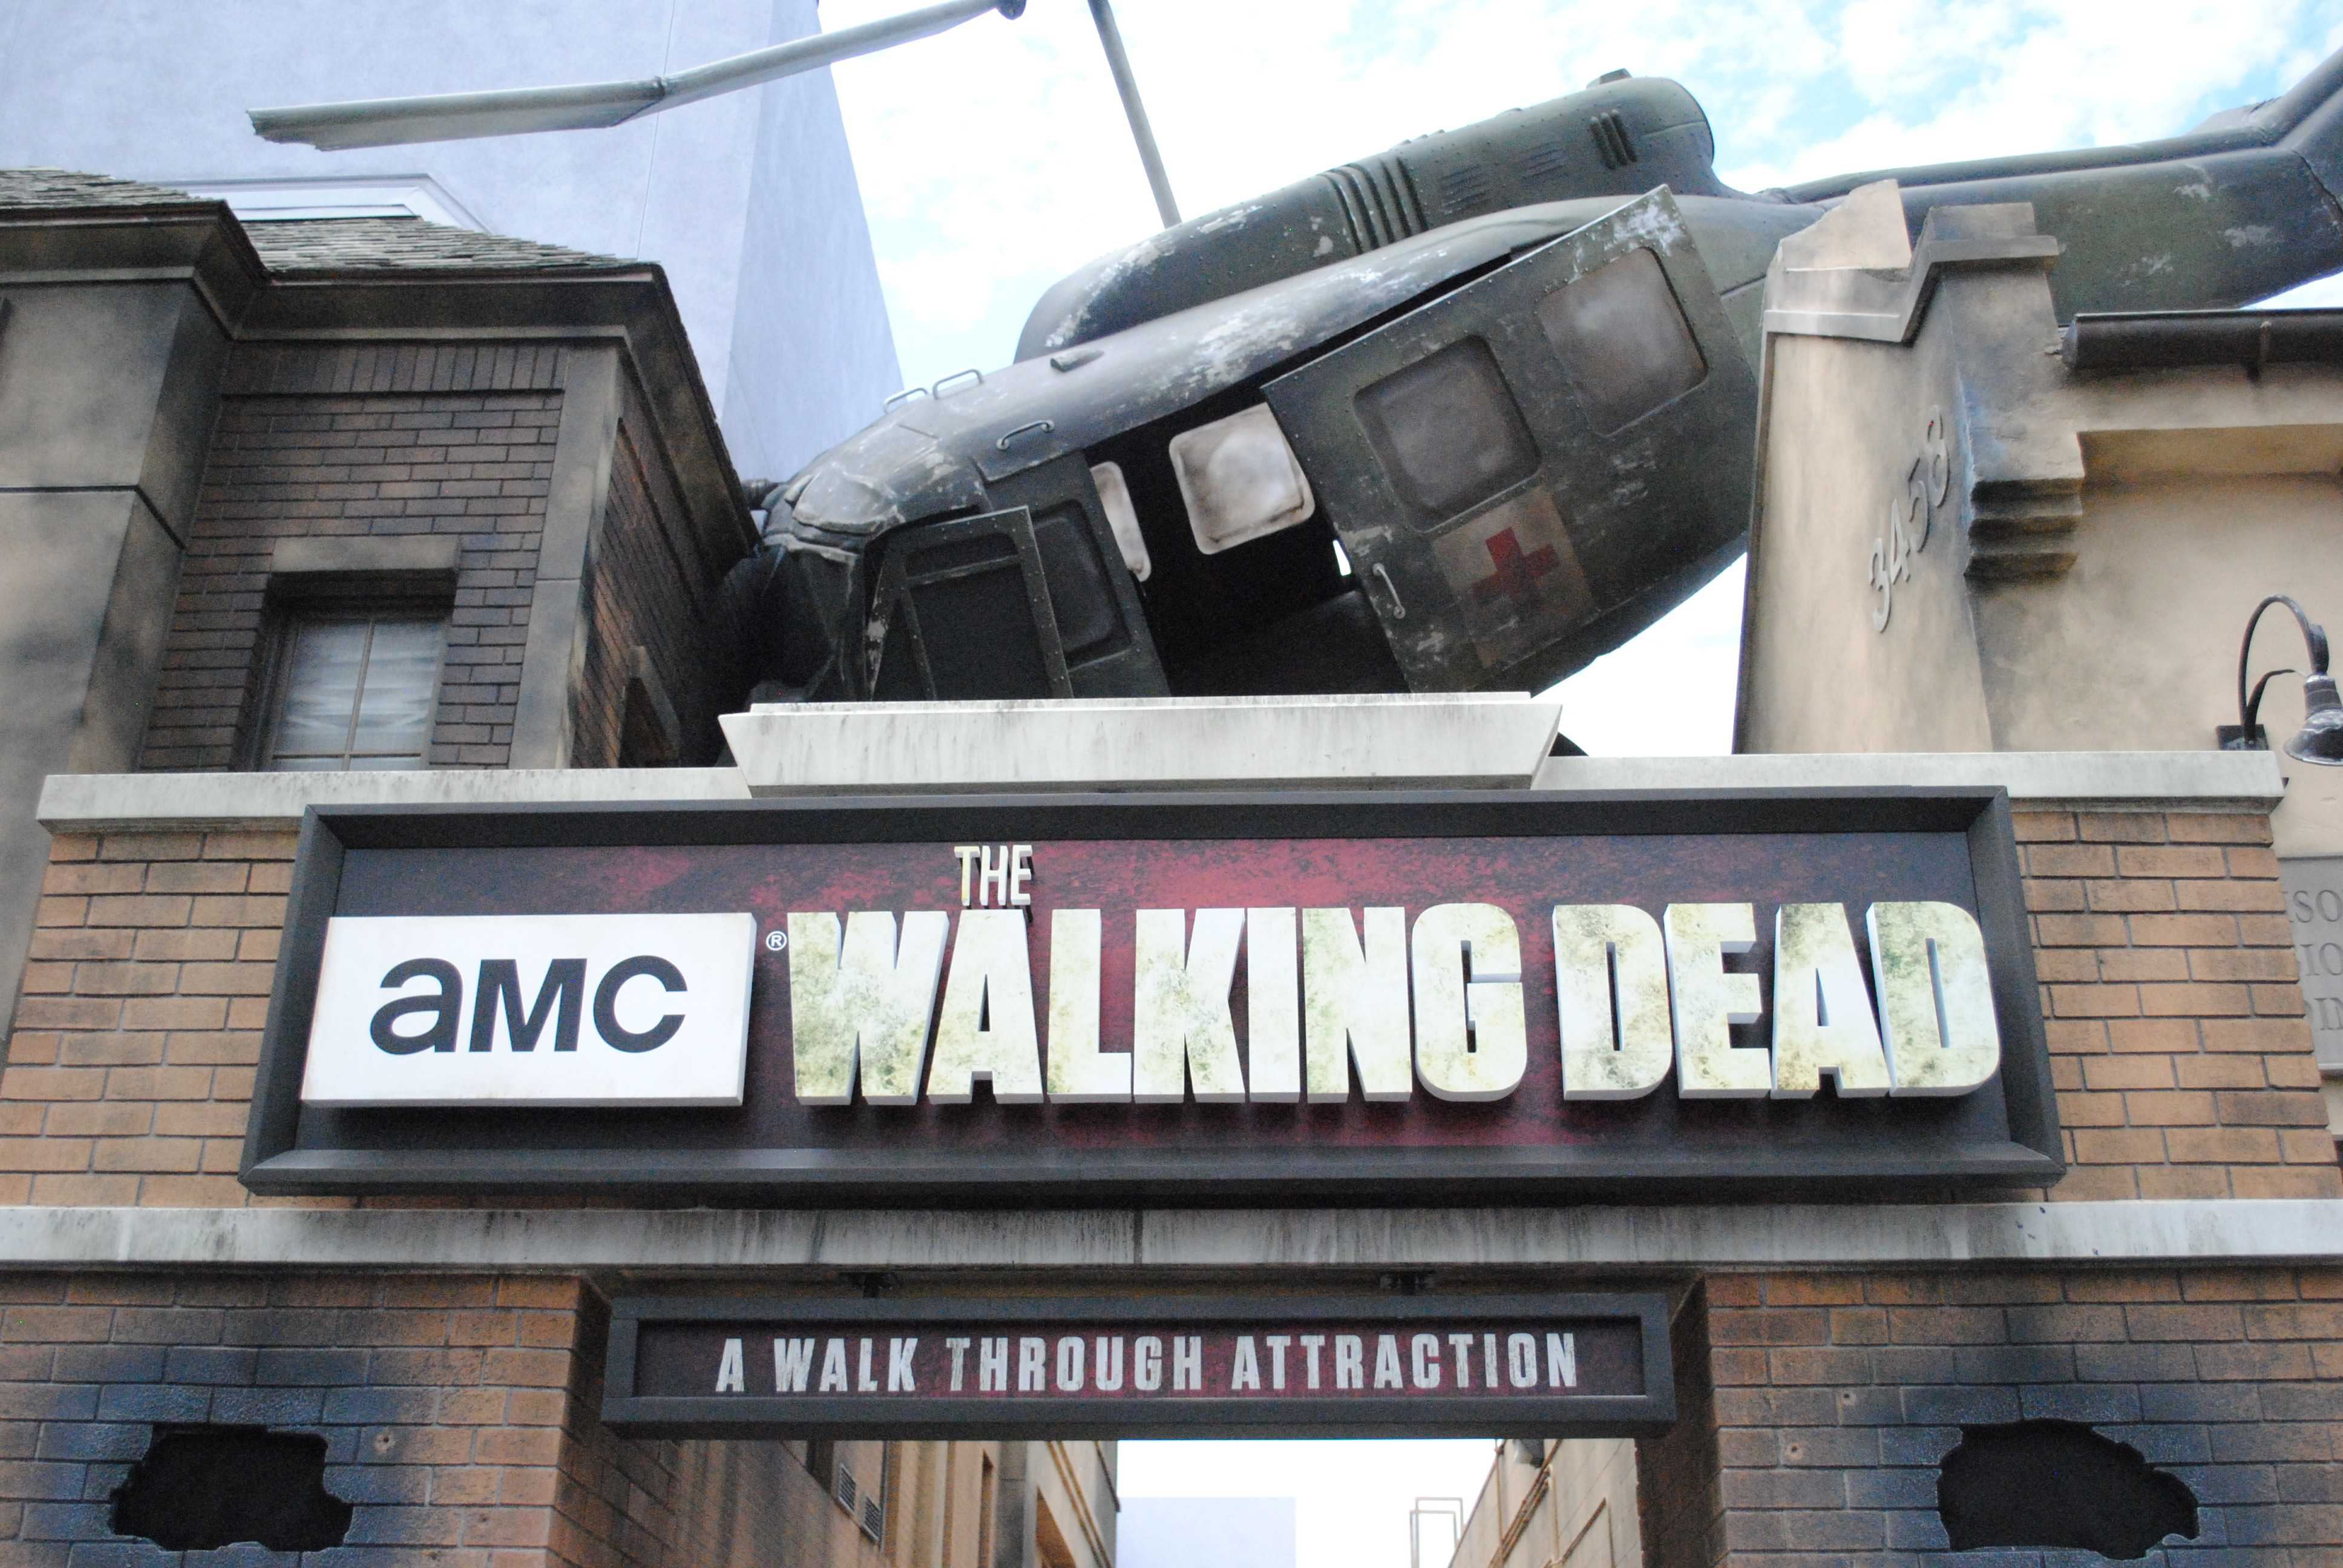 New+Walking+Dead+attraction+aims+for+authentic+scares.